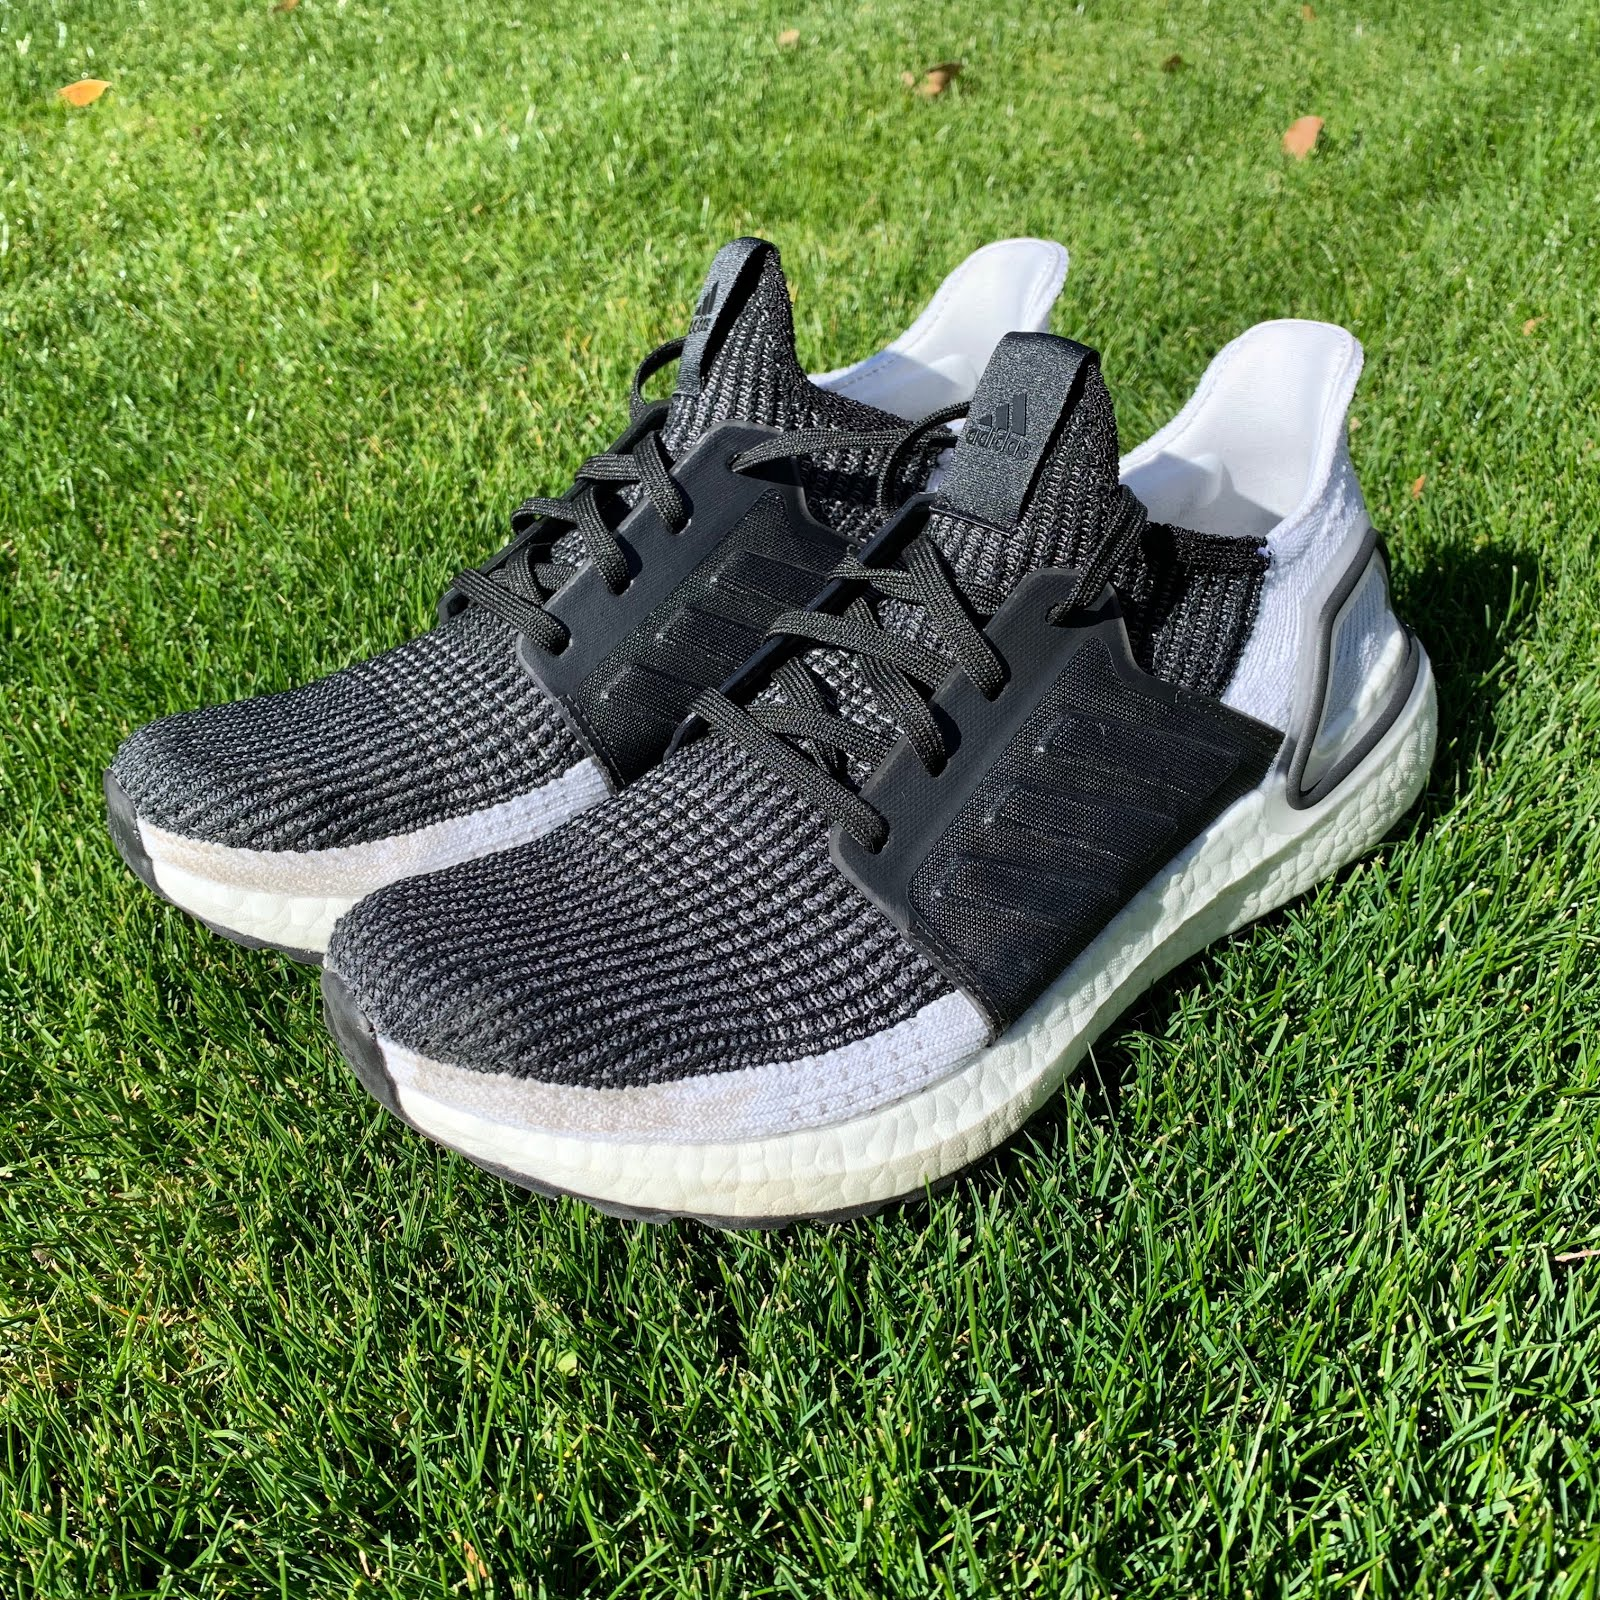 Yes Ultra Boost 19 Review RunAdidas Trail VirginiaIt's Road E9IWHD2